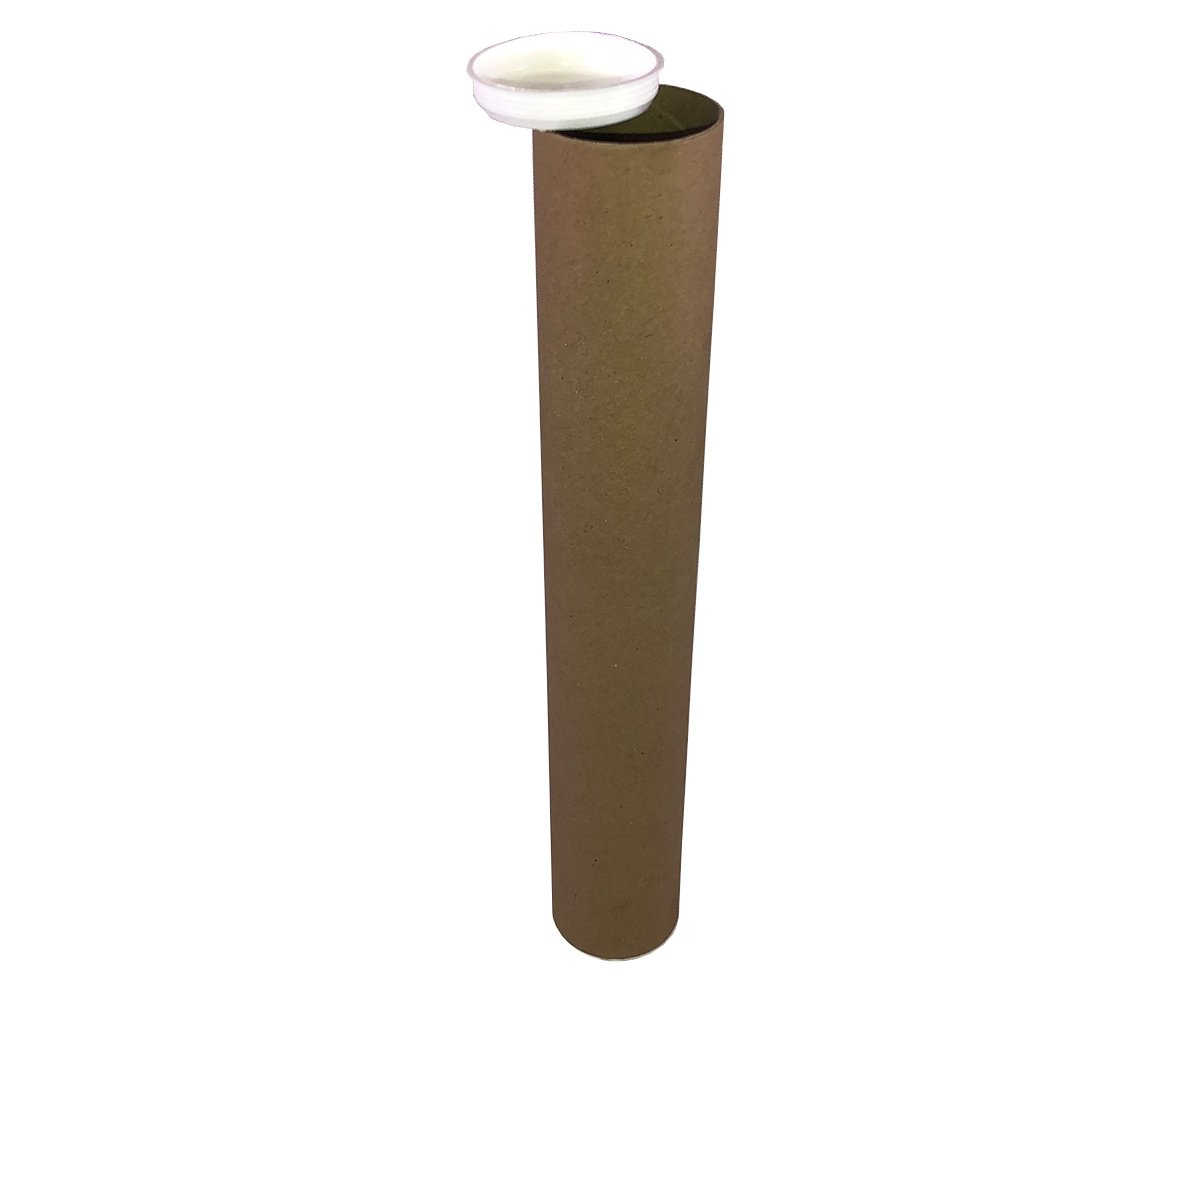 450mm A0 // Length 330mm 5 x Cardboard Postal Tubes 50mm Diameter 1.5mm Thickness White End Caps Both Ends Sizes Available A3 A1 850mm A2 A3 // Length 330mm 630mm